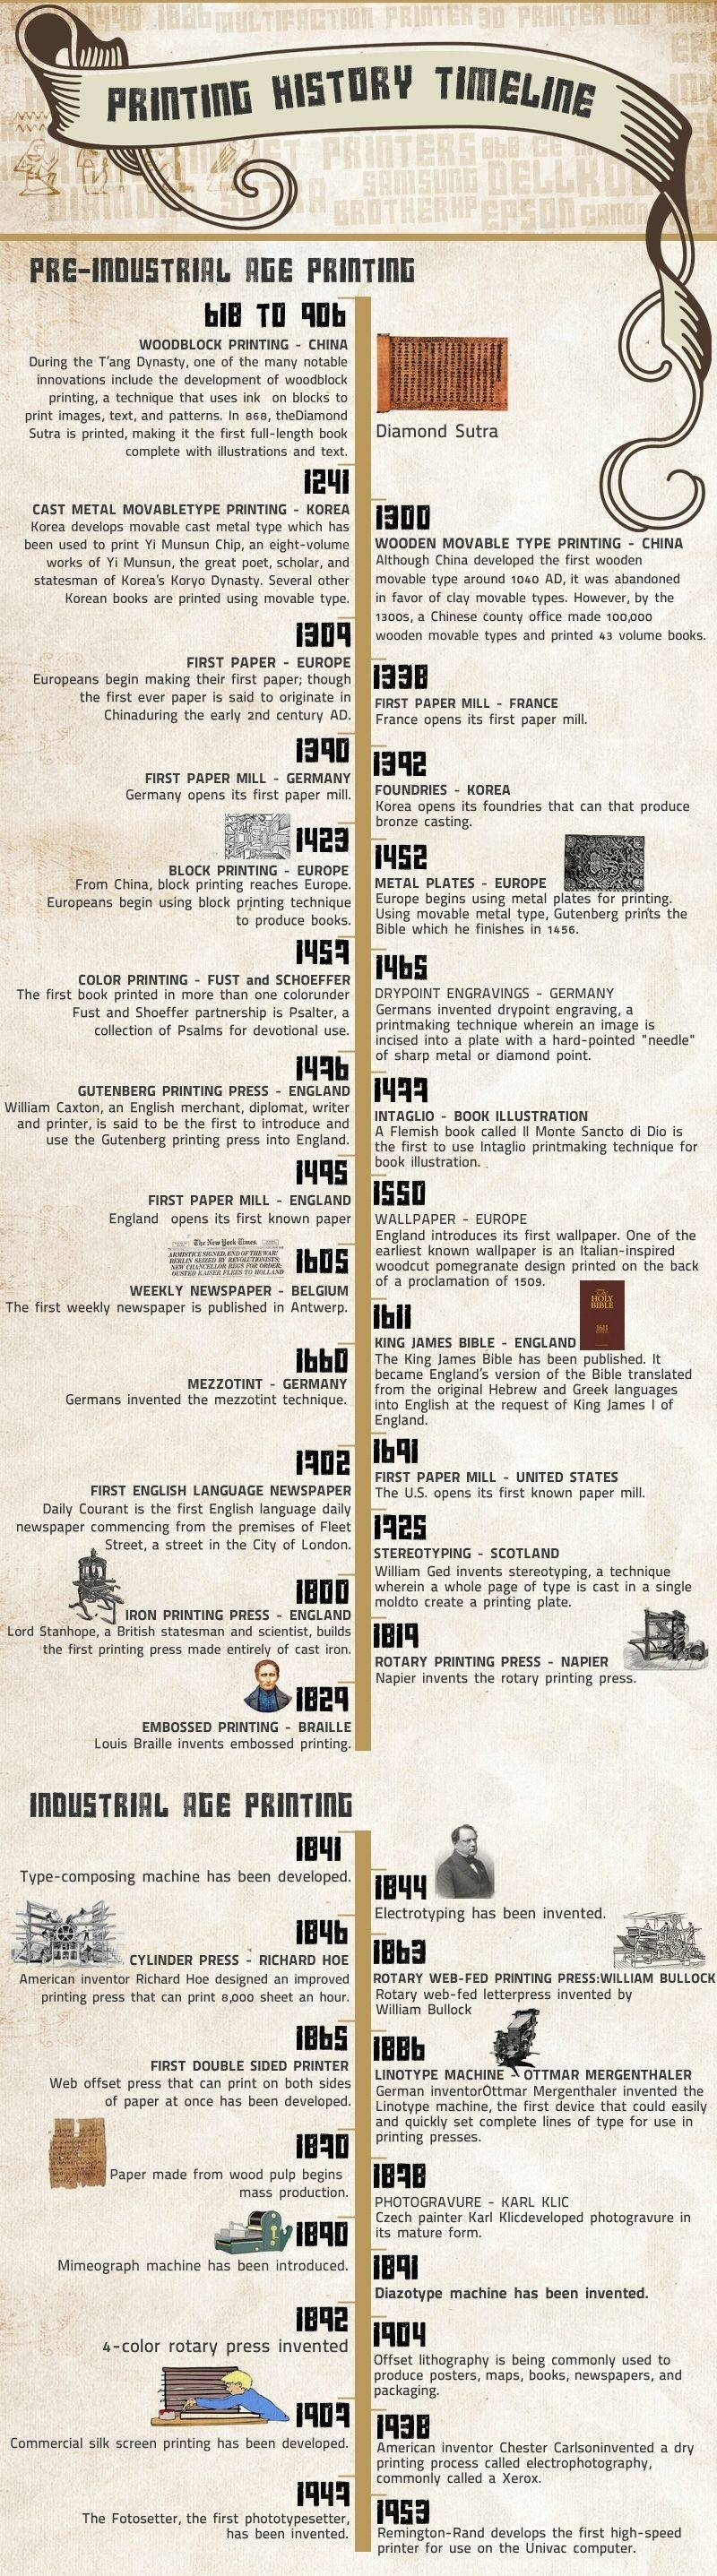 http://visual.ly/printing-history-timeline